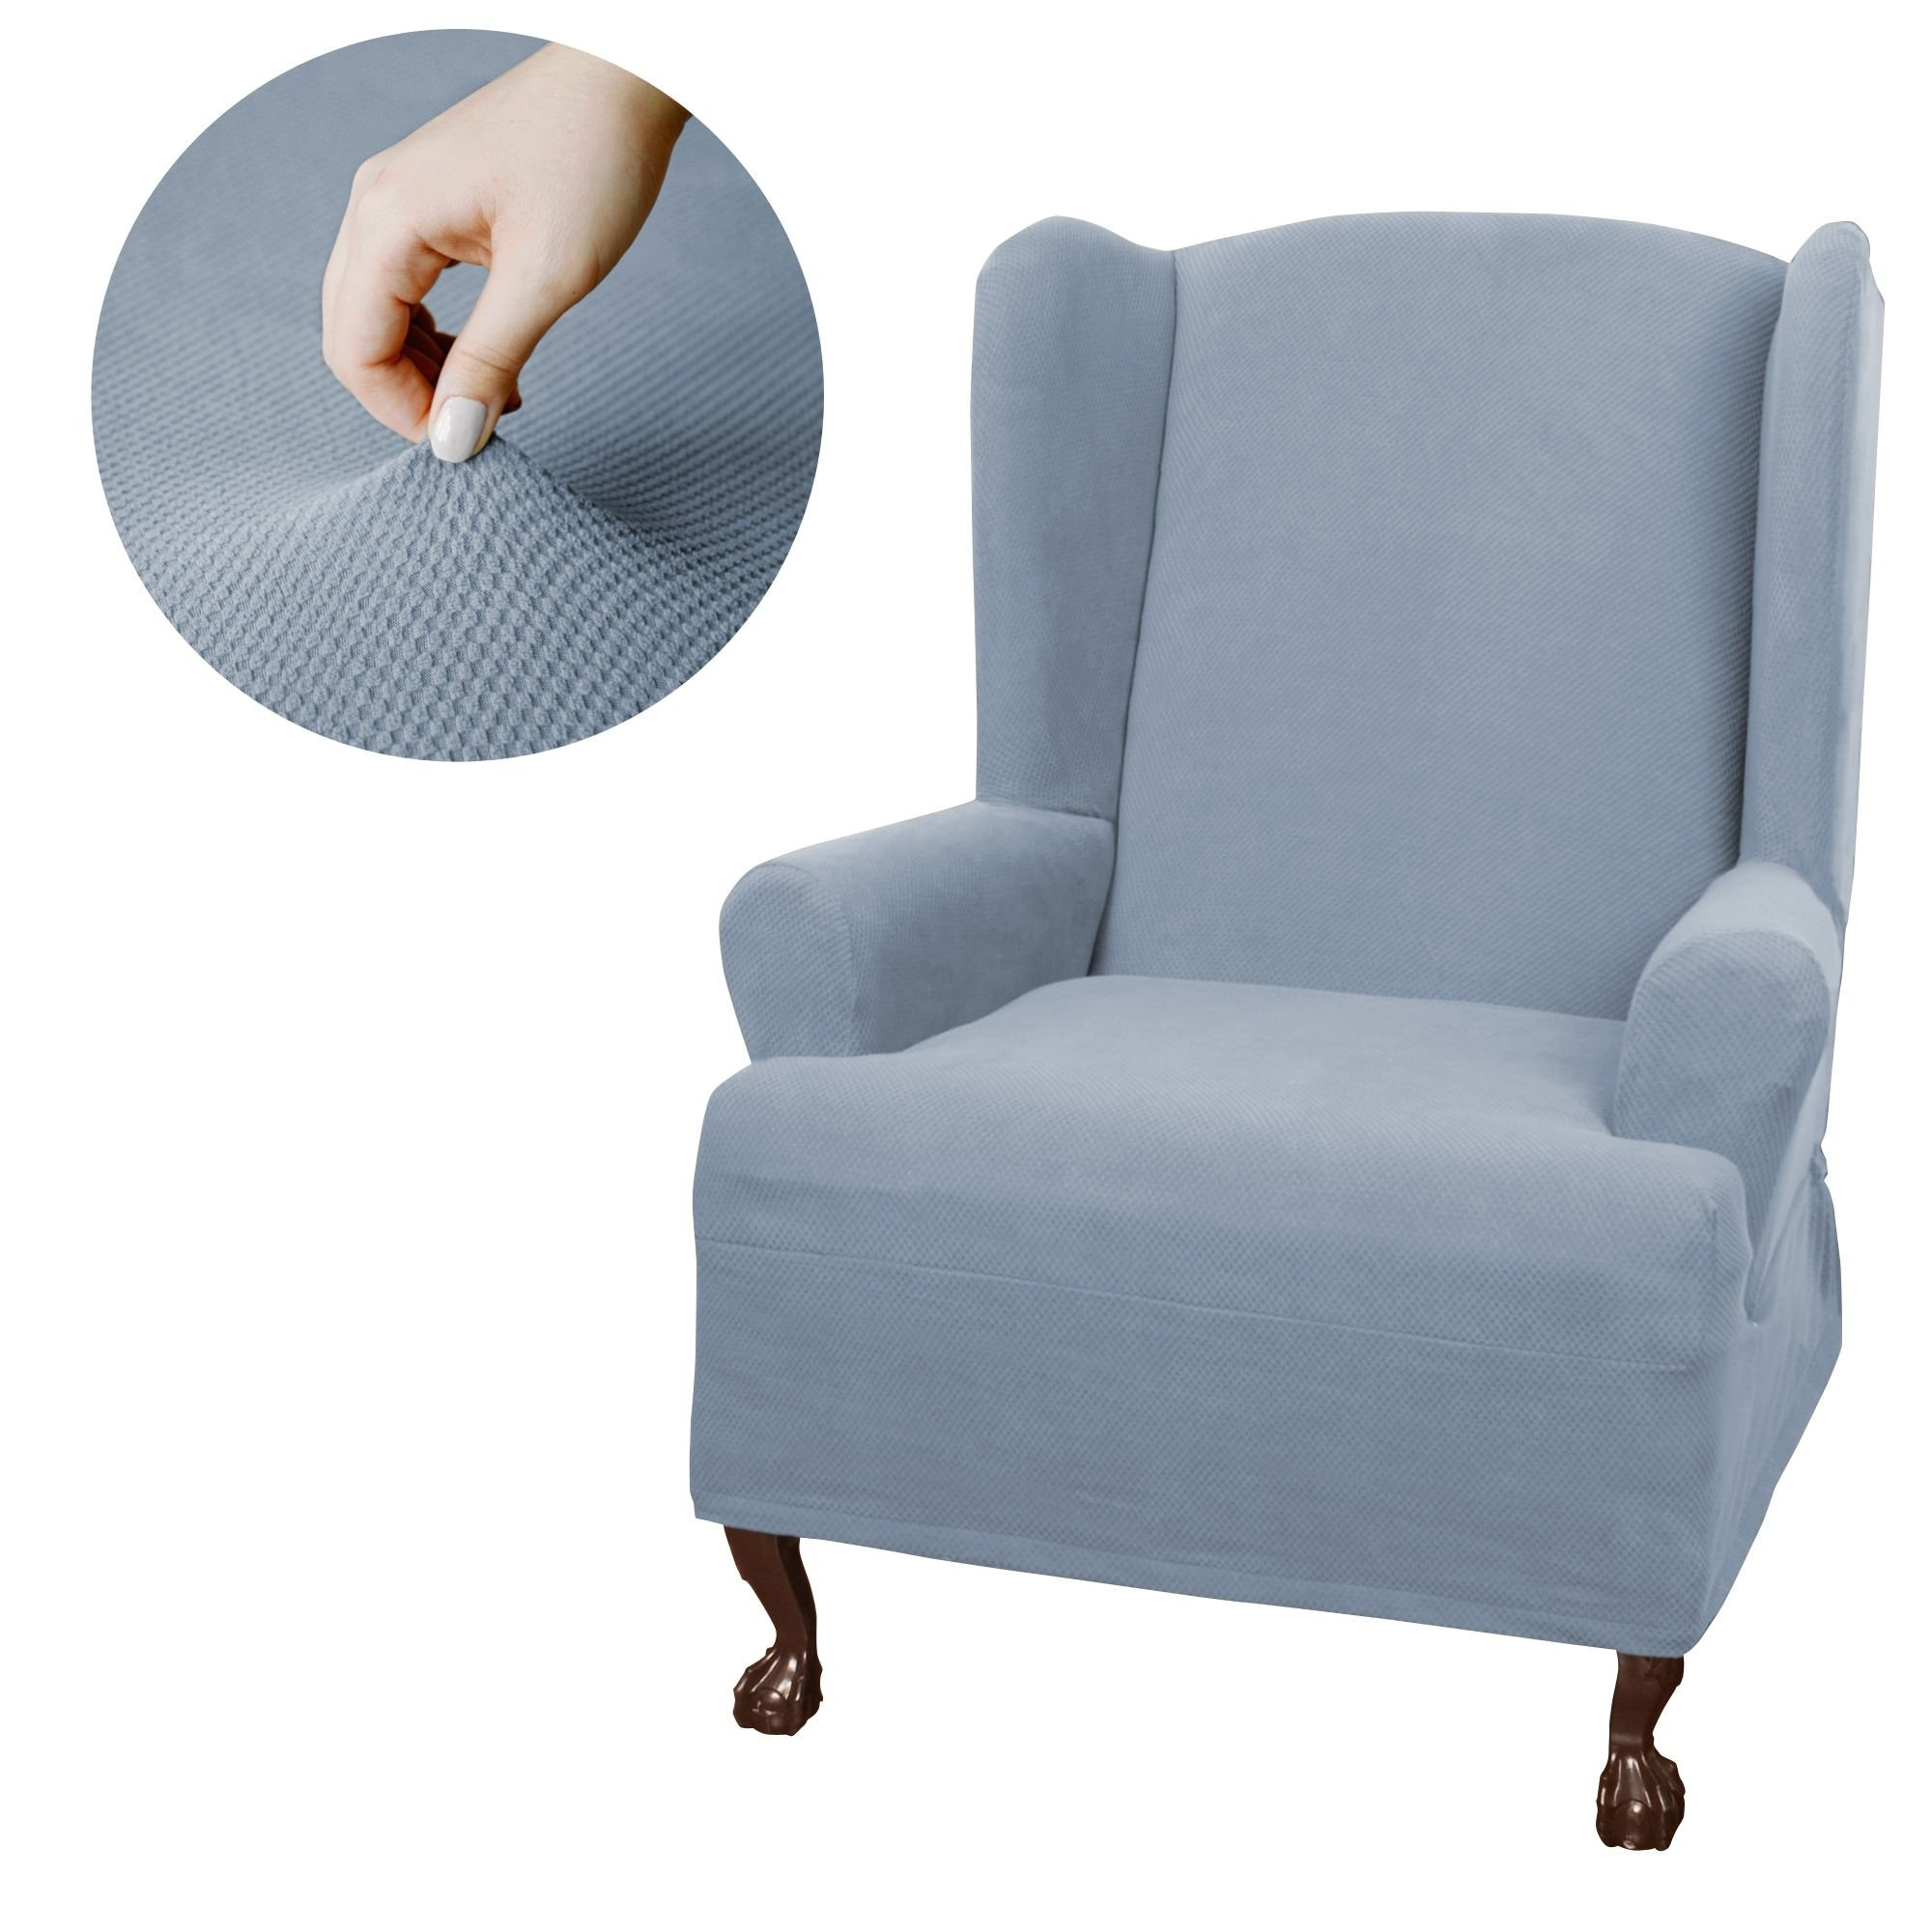 Maytex Pixel Stretch 1 Piece Wing Chair Furniture Cover Slipcover